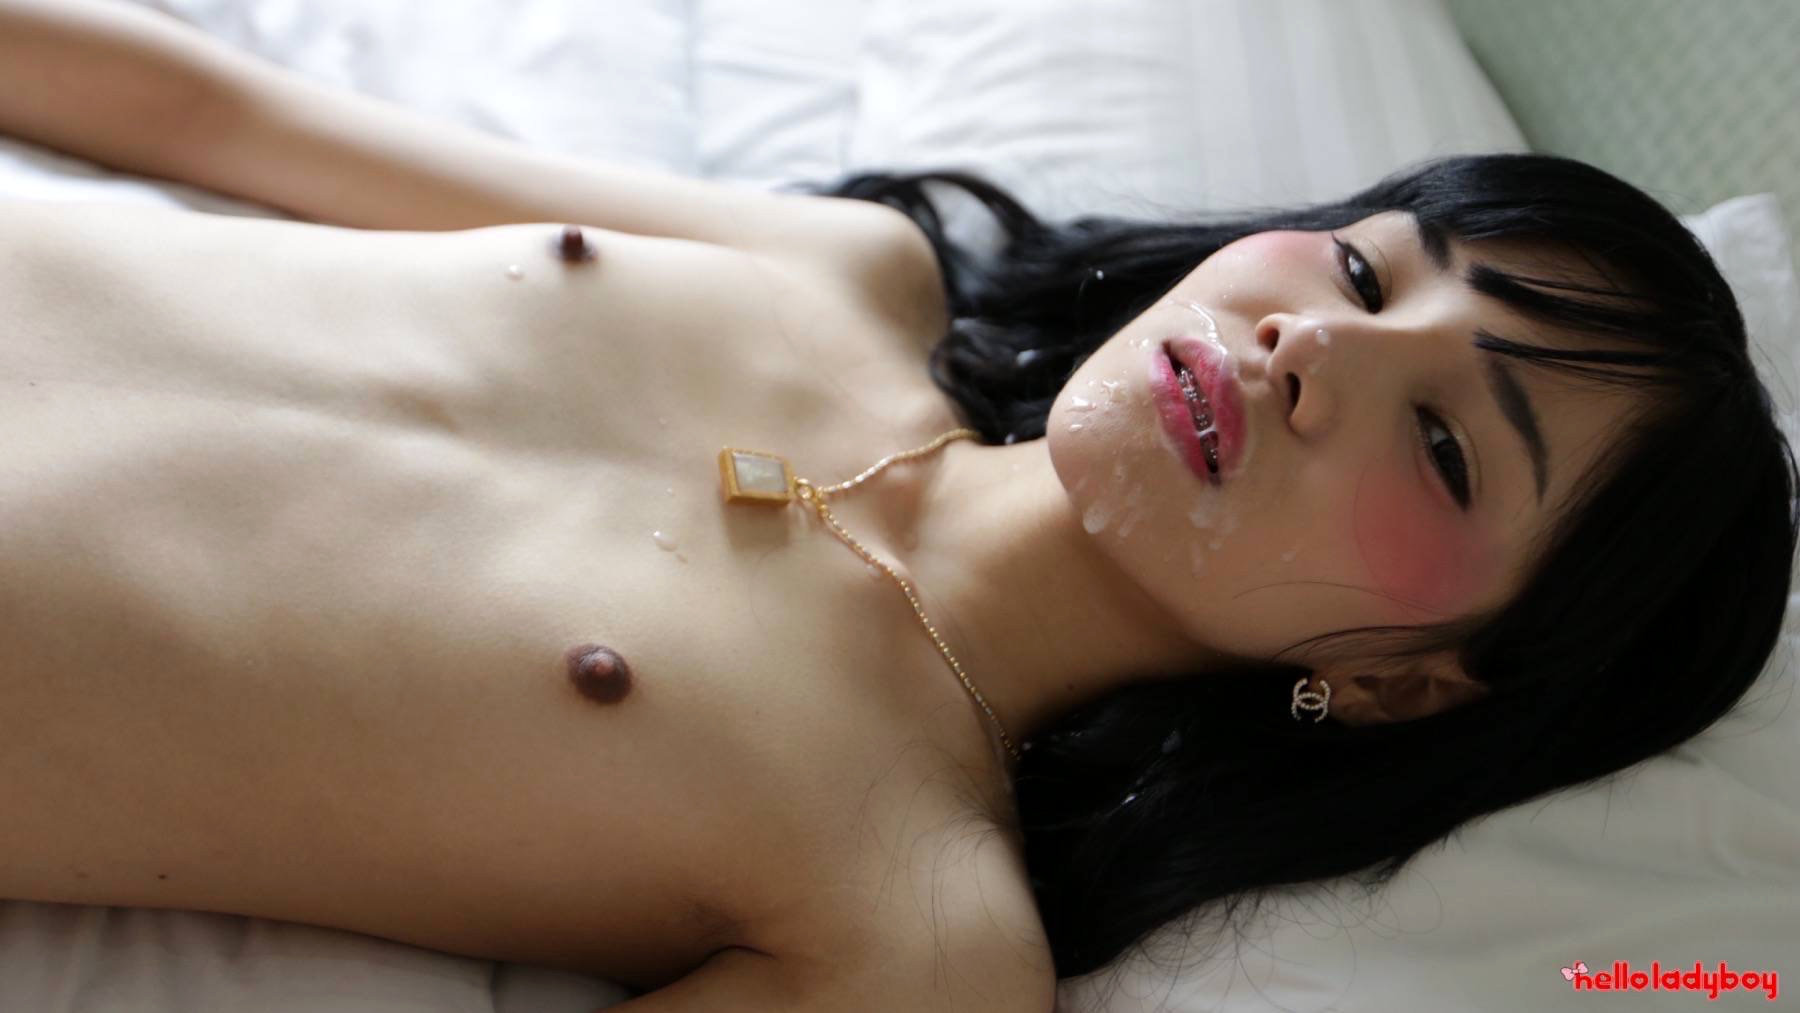 19 Year Old Asian TGirl Blowjob And Facial From White Dick